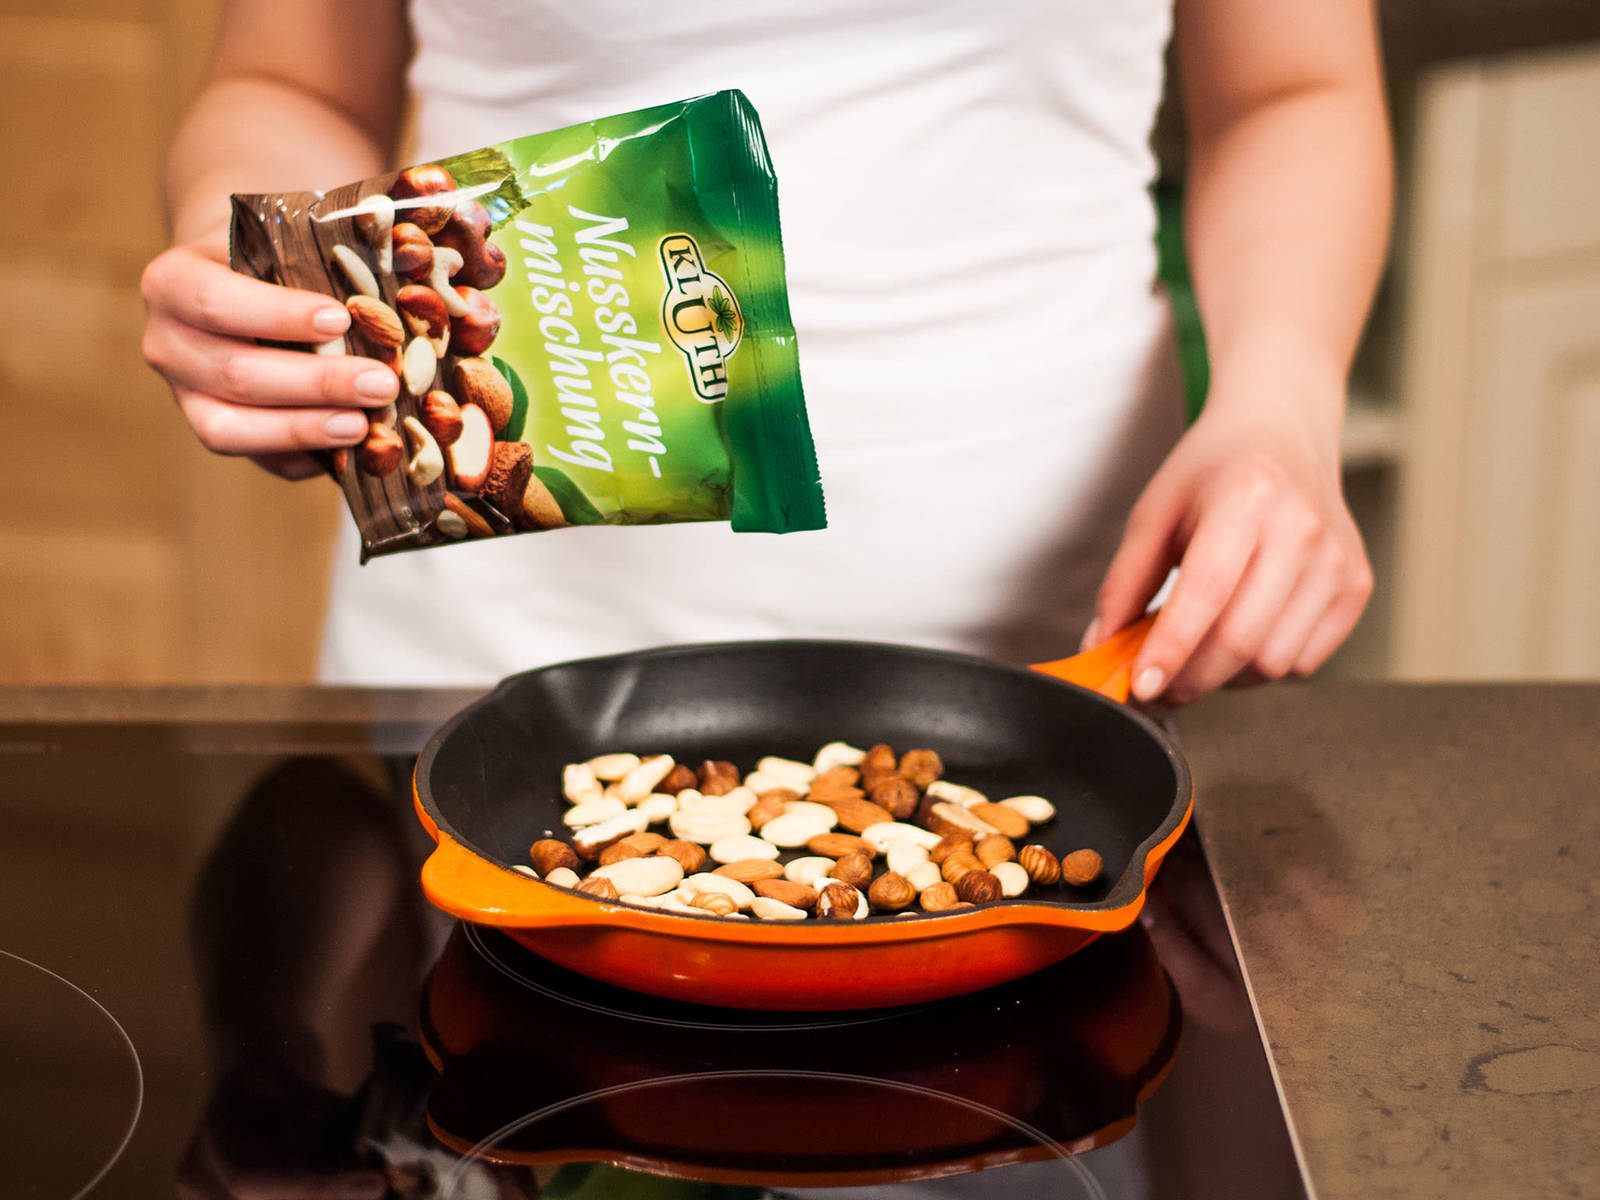 Toast nut mix in a pan until golden brown. A combination of hazelnuts, almonds, cashews, and Brazil nuts works well.